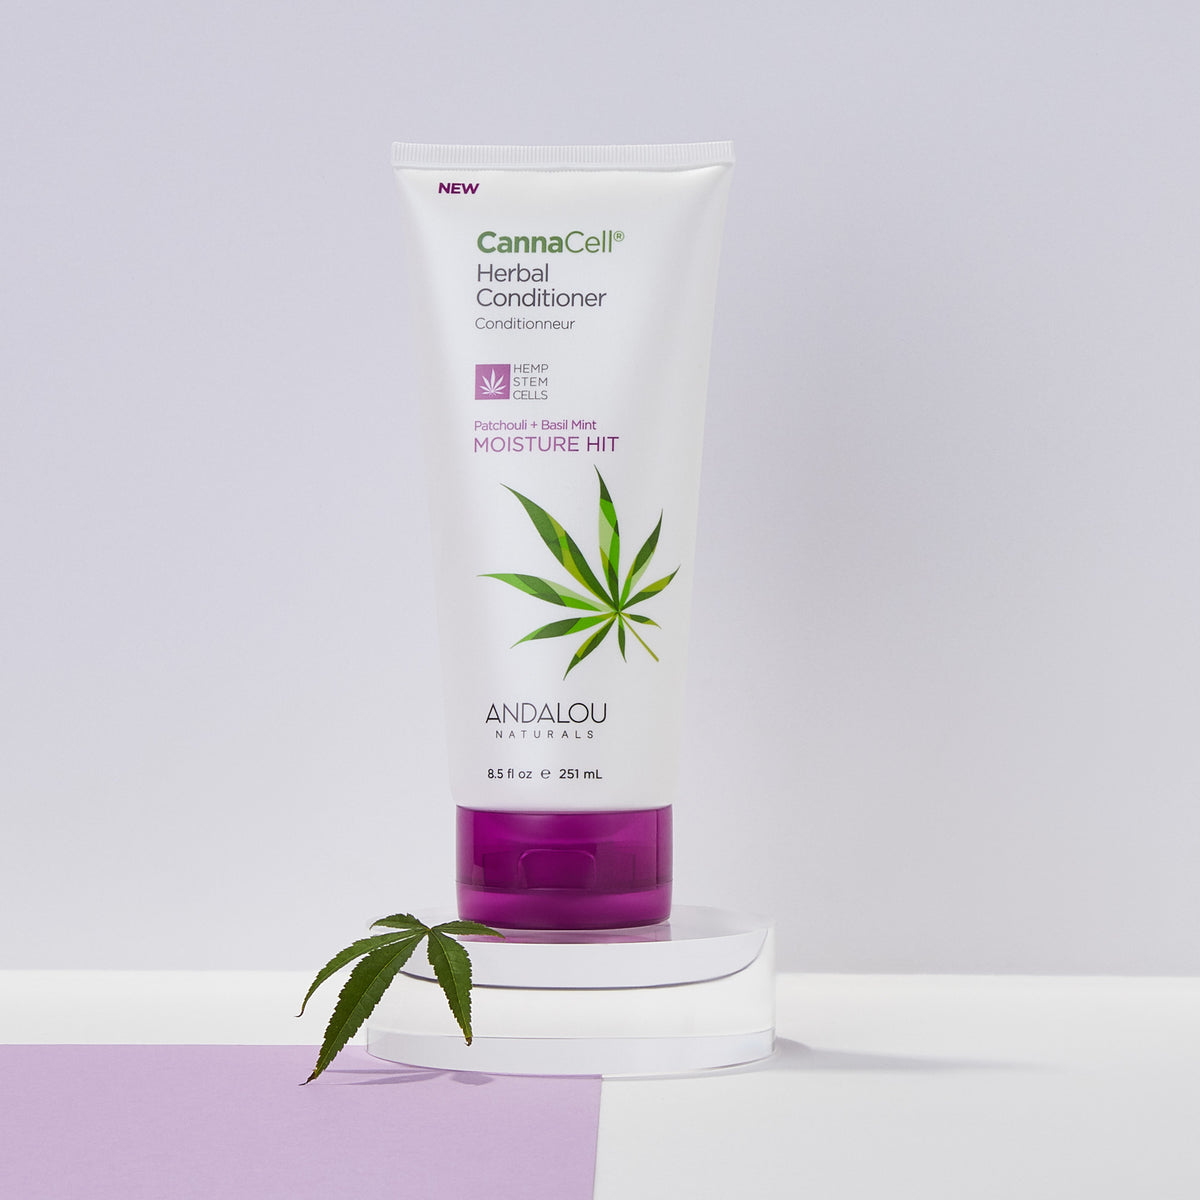 CannaCell Herbal Conditioner - Moisture Hit - Andalou Naturals US